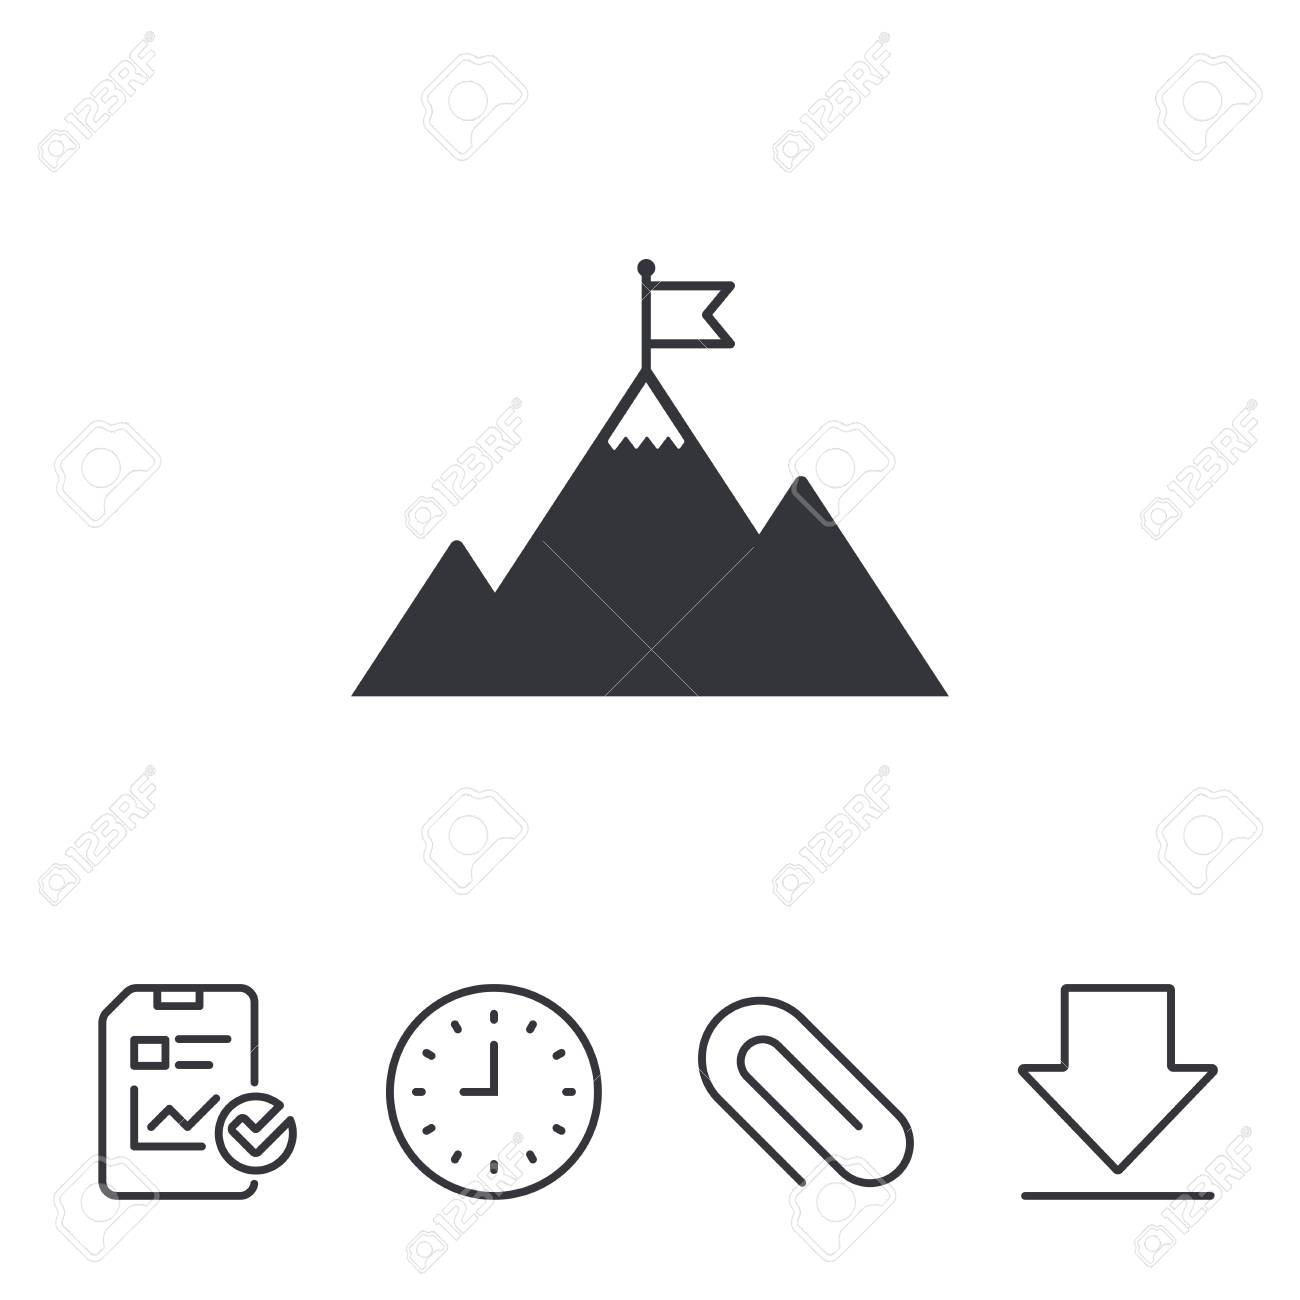 Flag On Mountain Icon Leadership Motivation Sign Mountaineering Royalty Free Cliparts Vectors And Stock Illustration Image 80473505